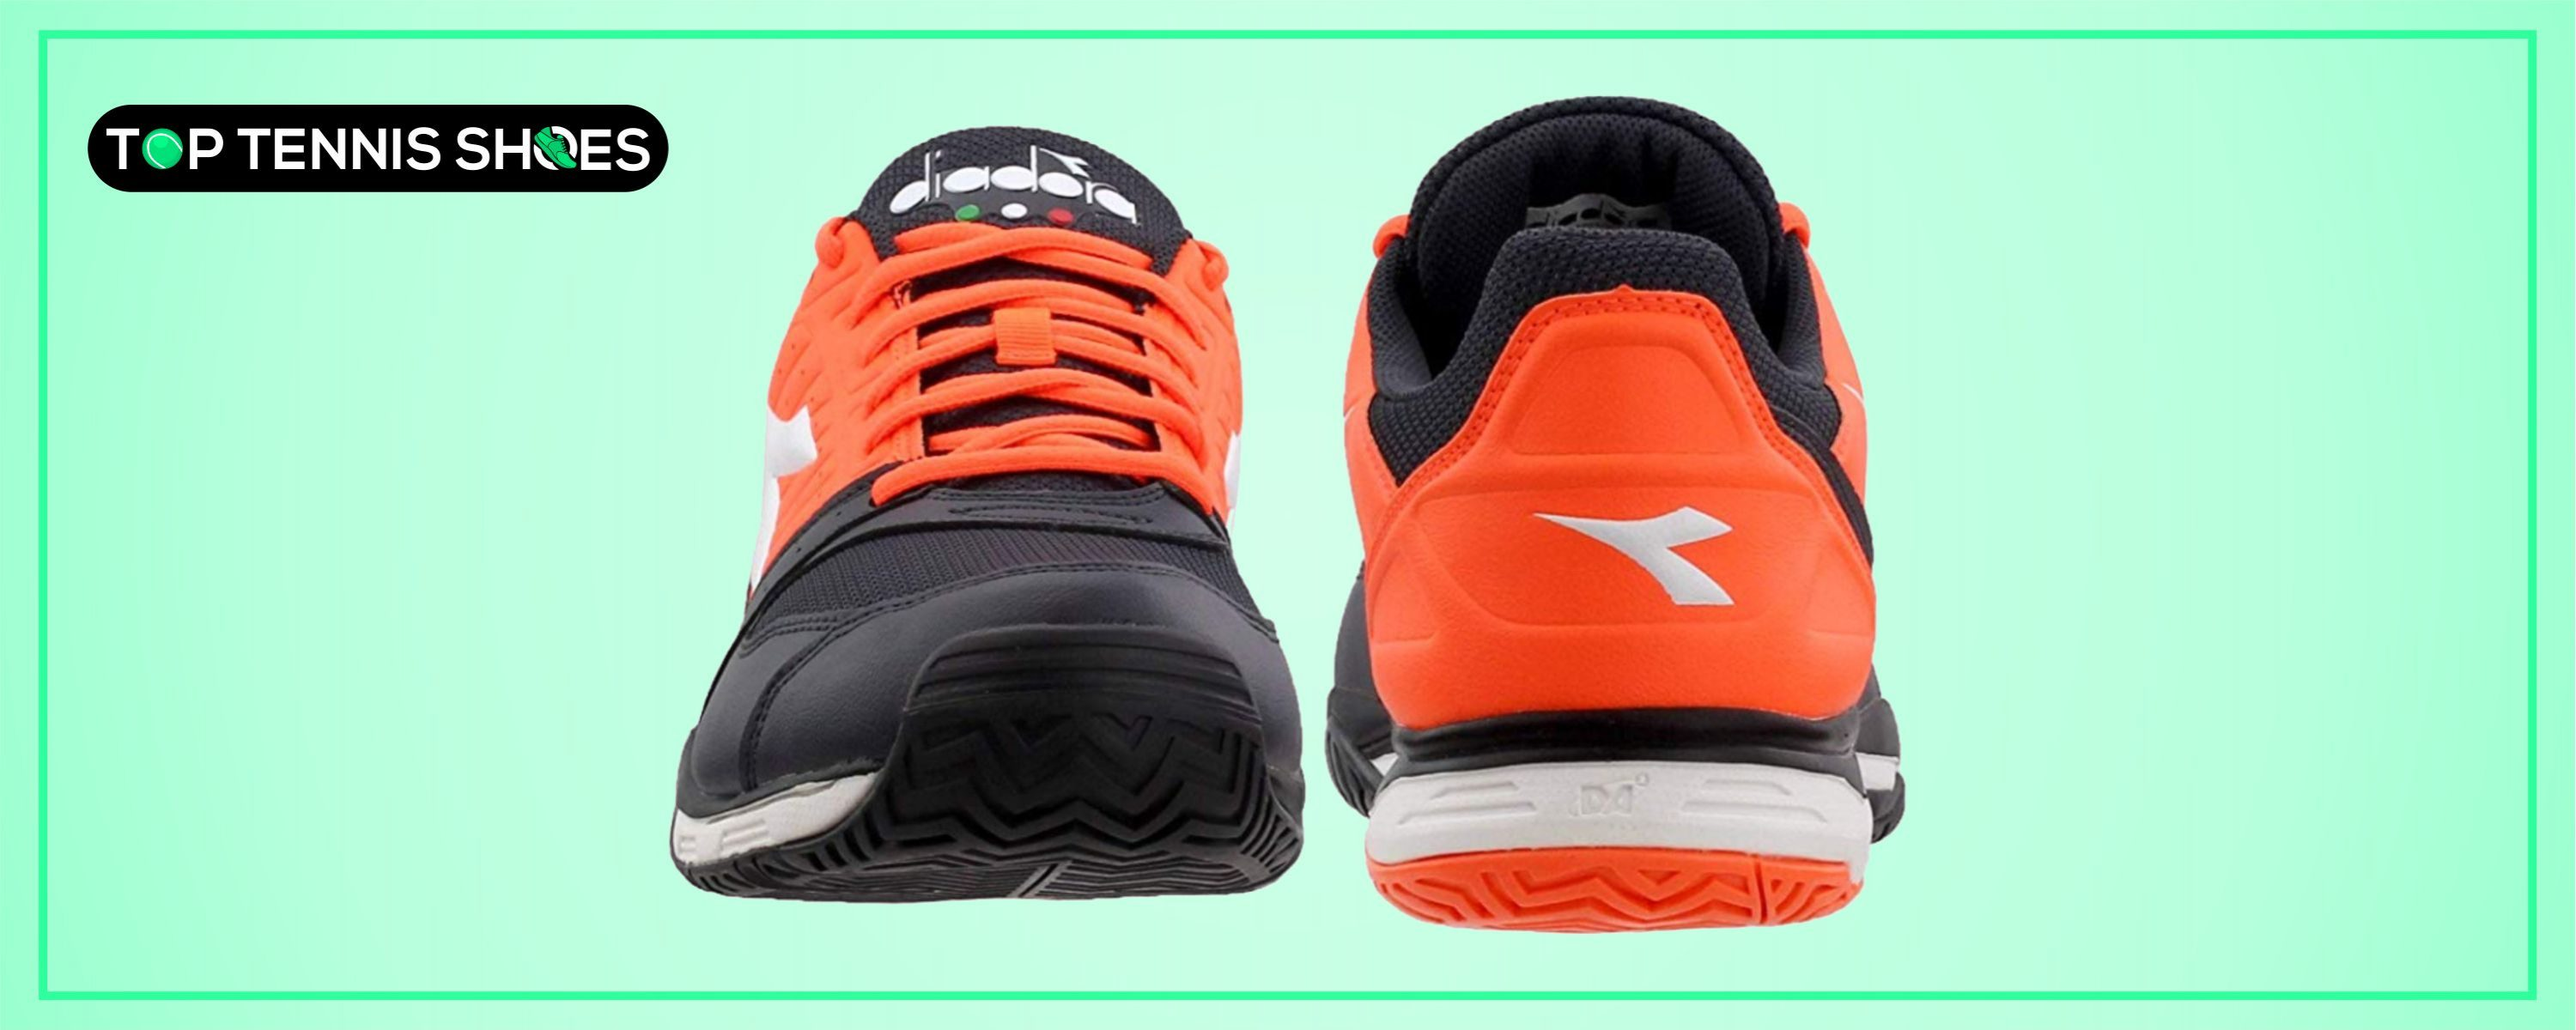 Top Tennis Shoes for Toe Draggers